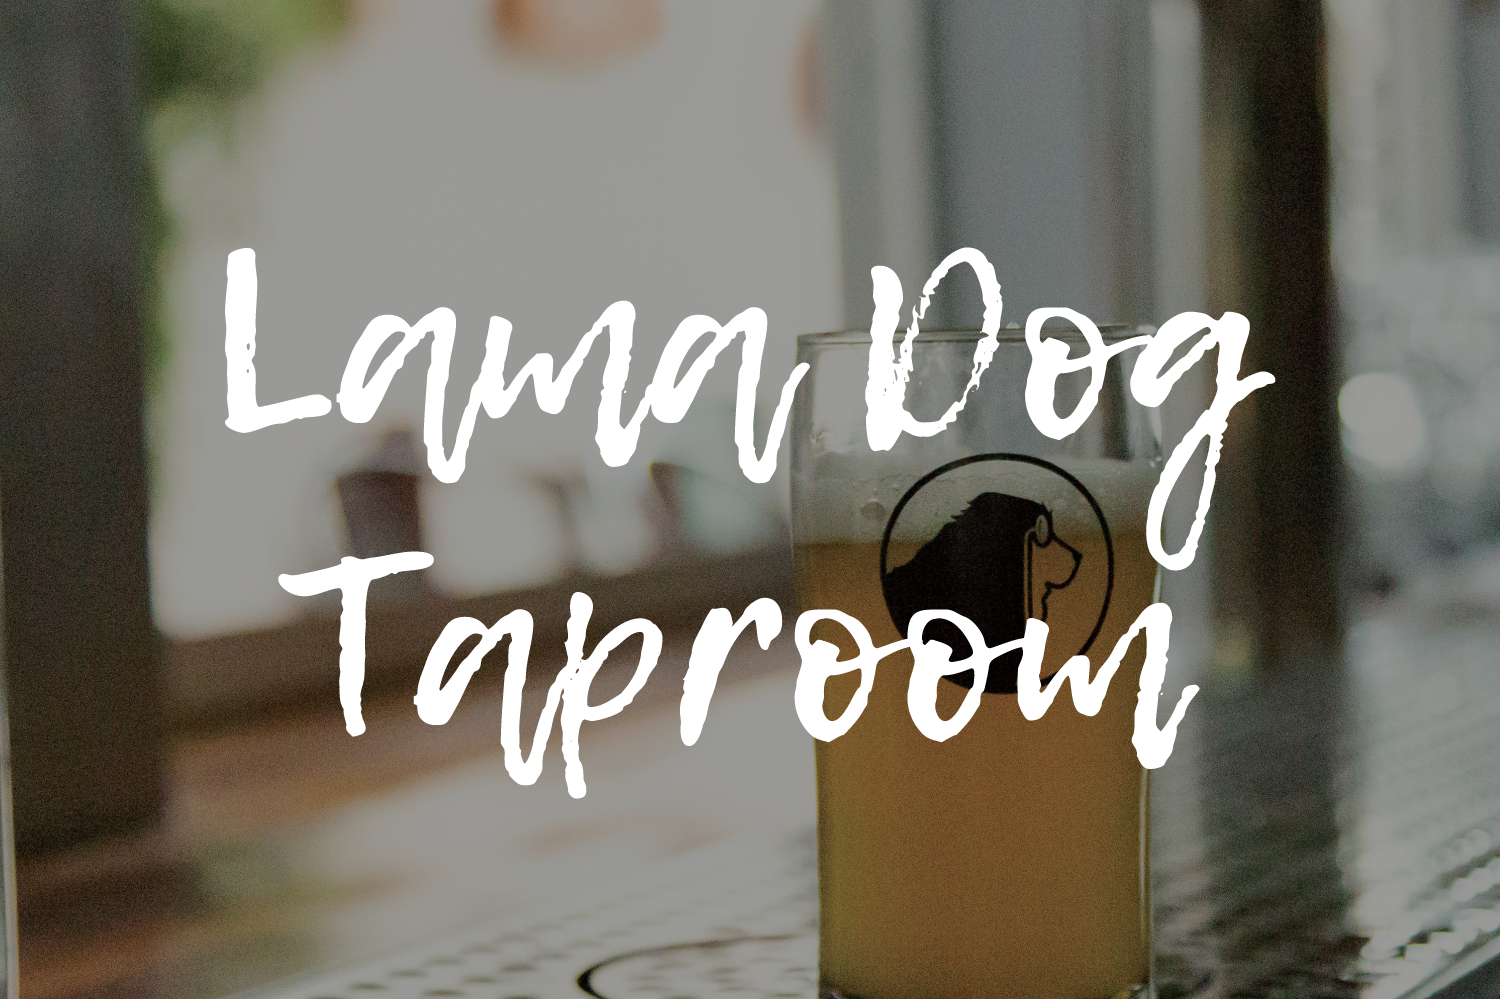 lama dog taproom + bottleshop print